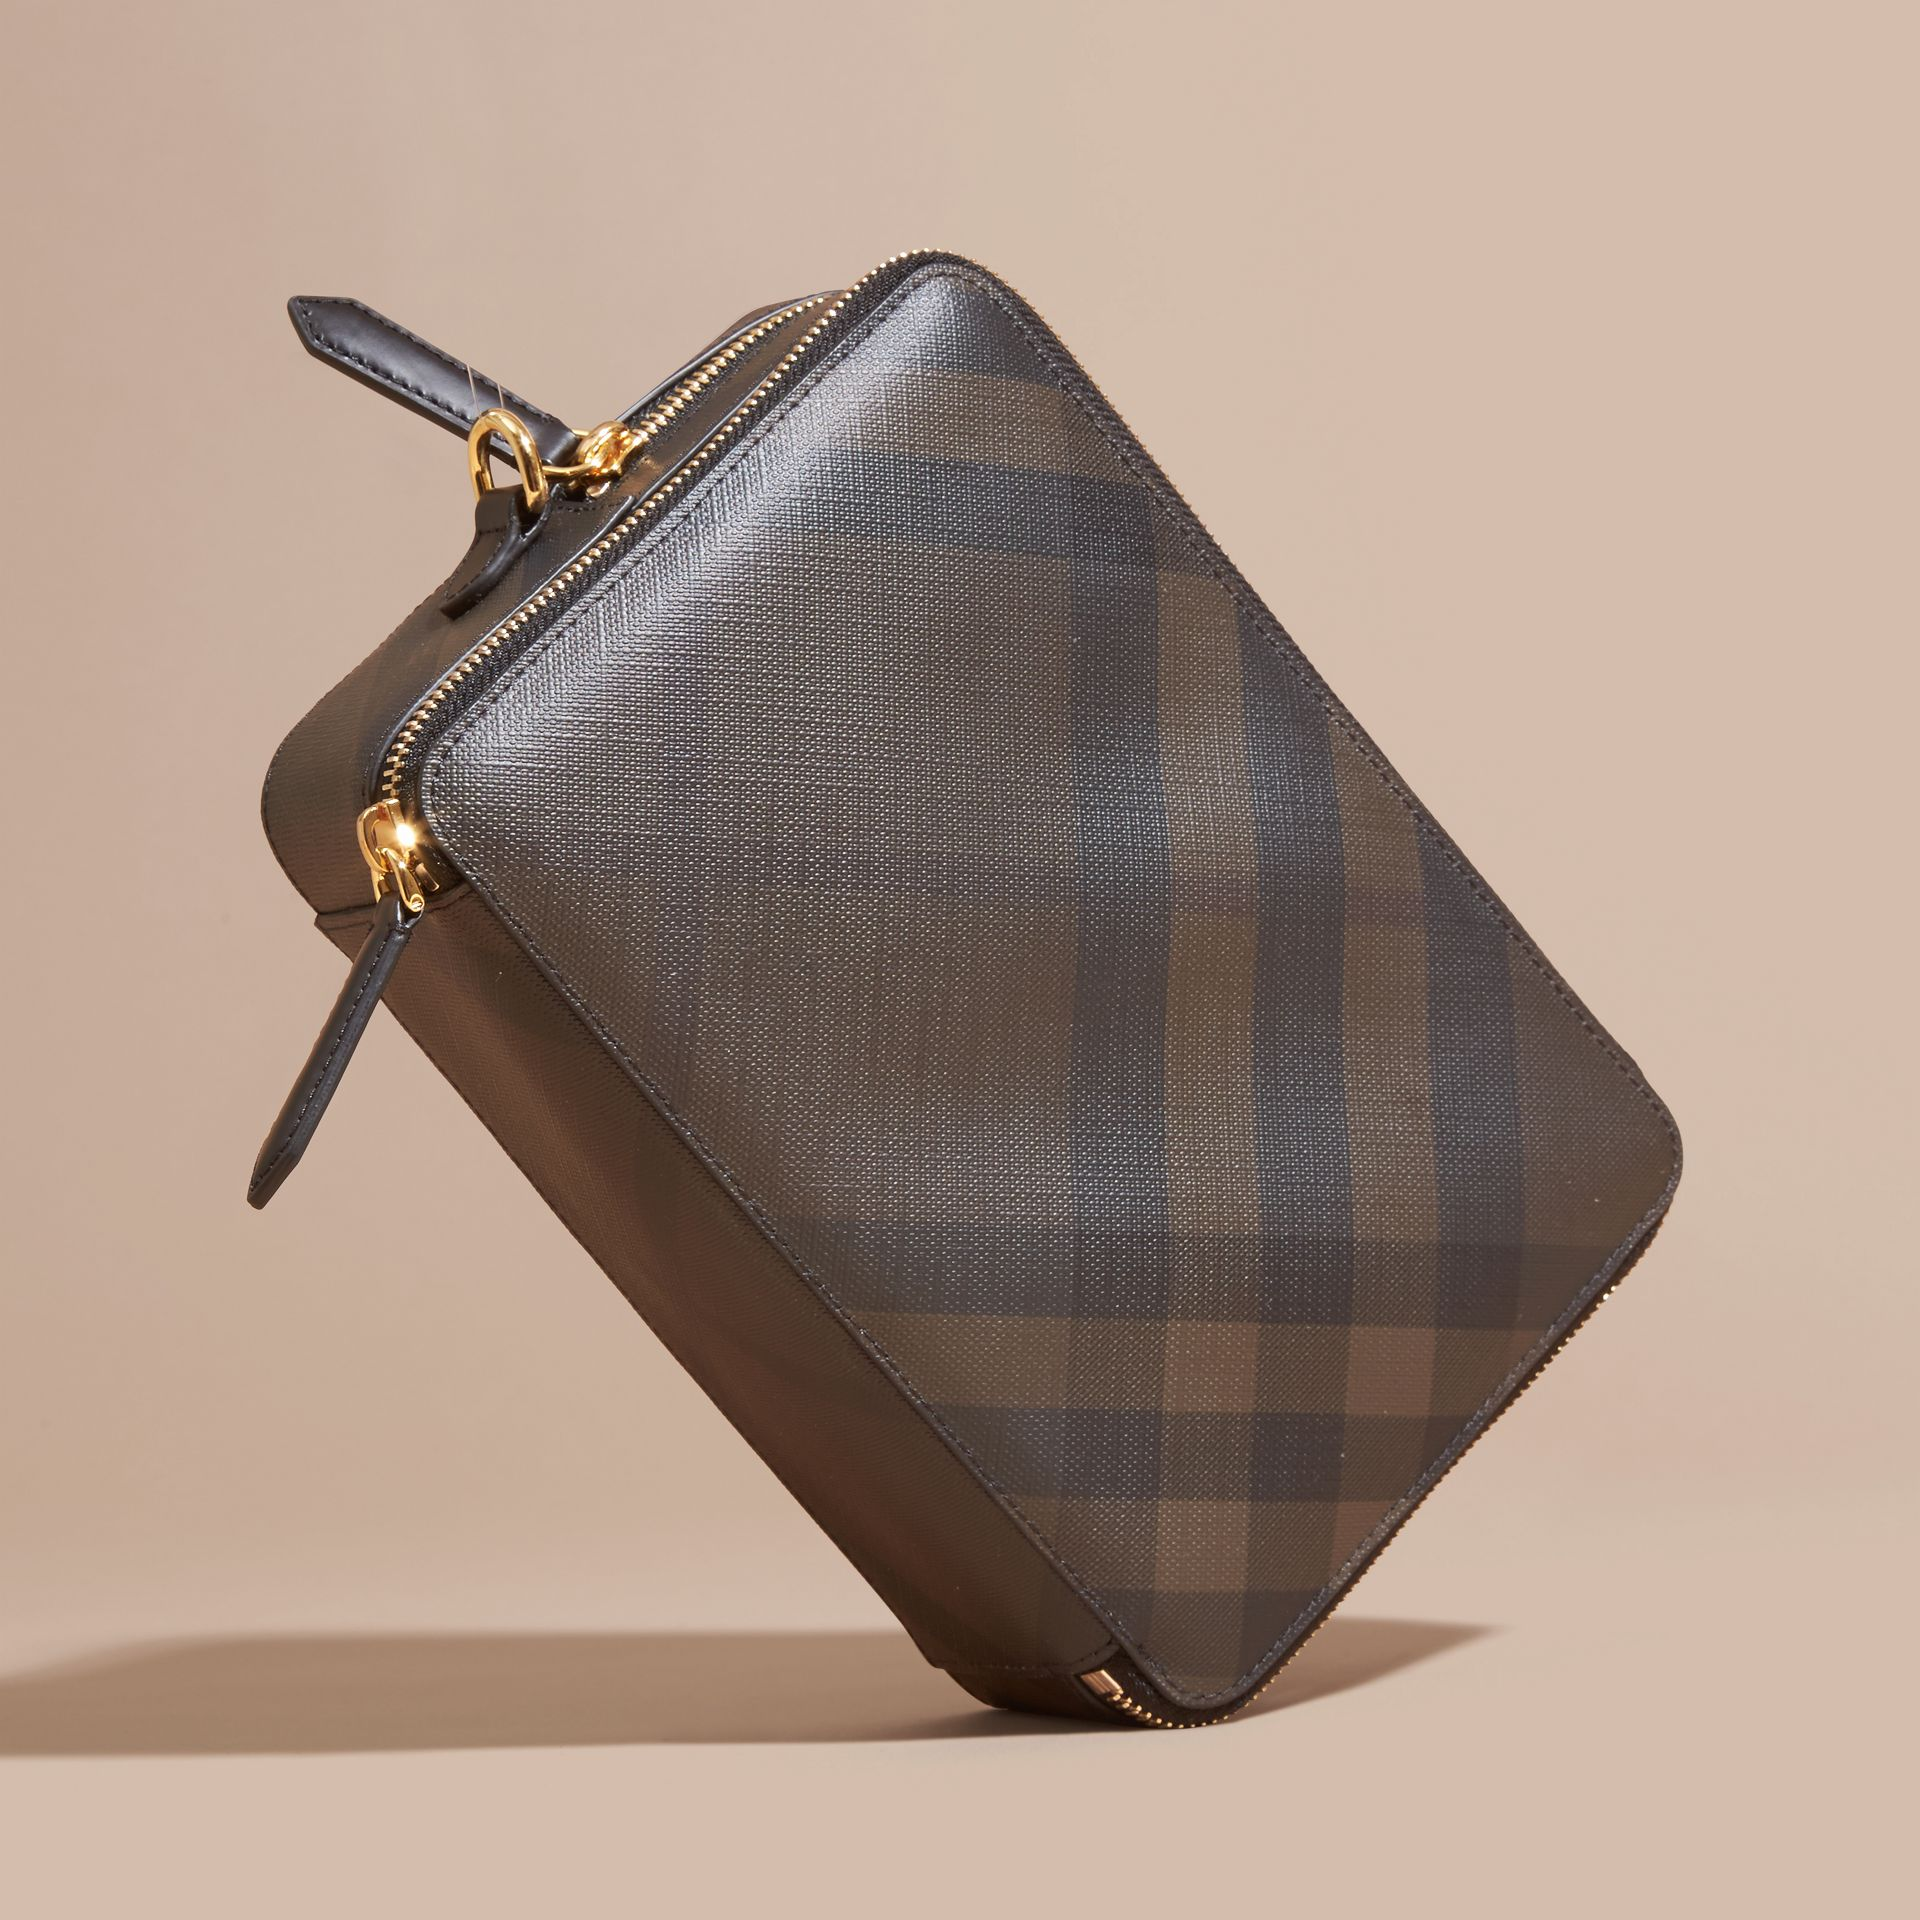 Leather-trimmed London Check Pouch in Chocolate/black - Men | Burberry - gallery image 5